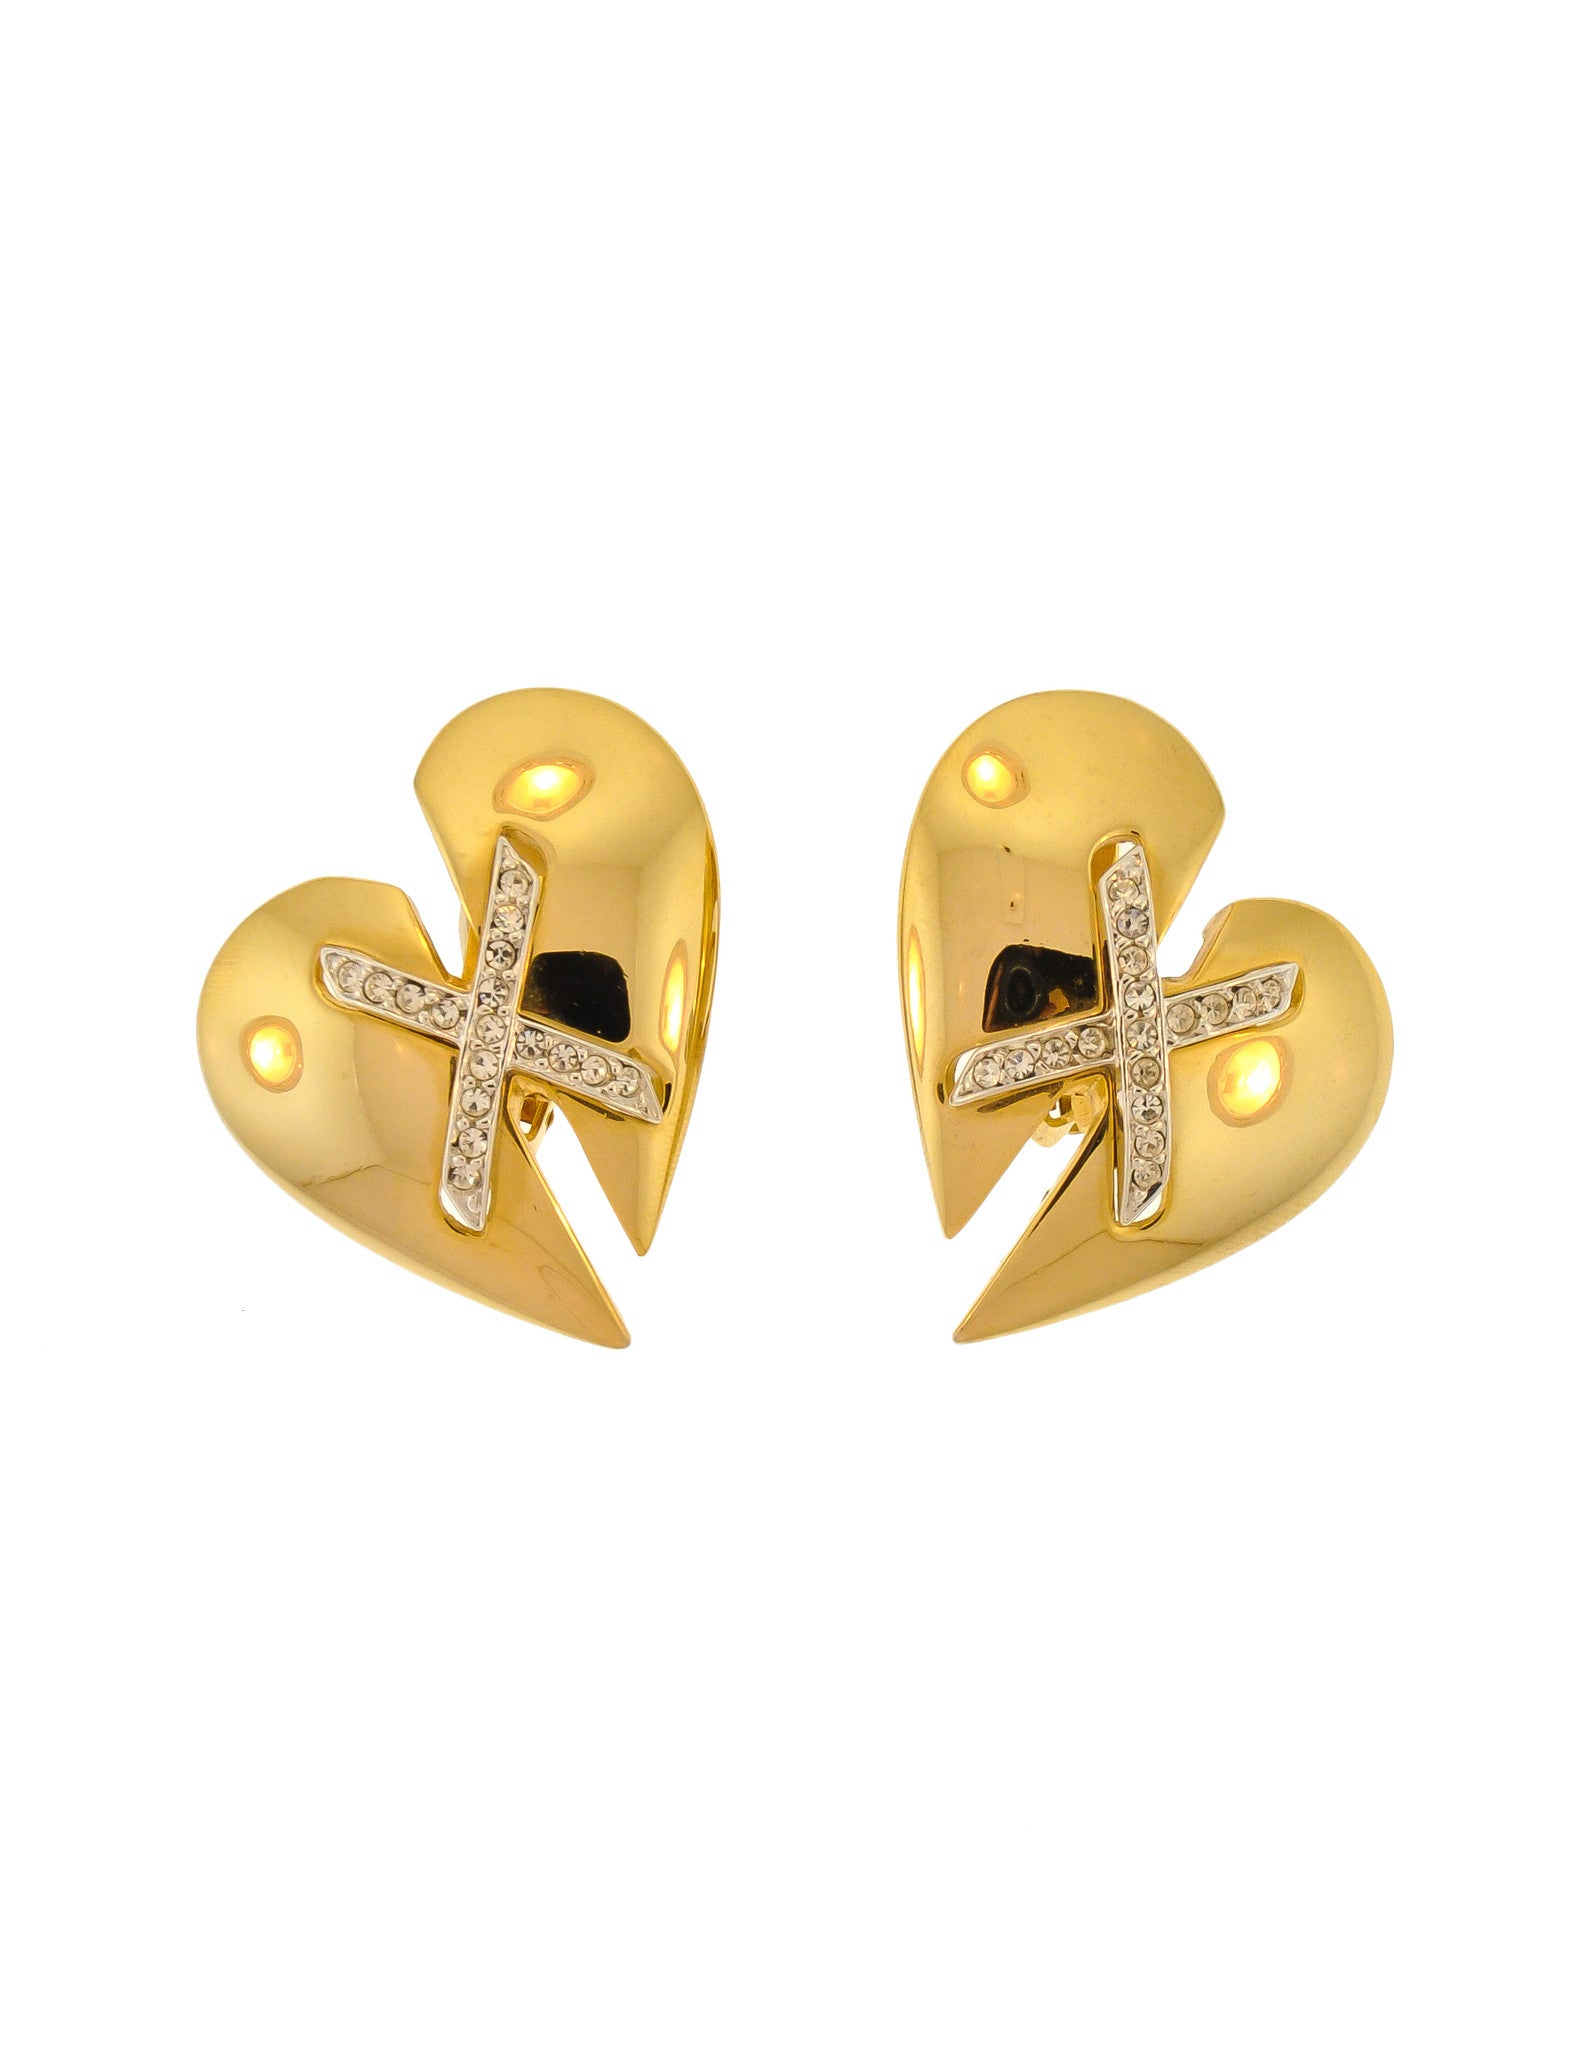 Courrèges Vintage Gold Broken Heart Earrings - Amarcord Vintage Fashion  - 1